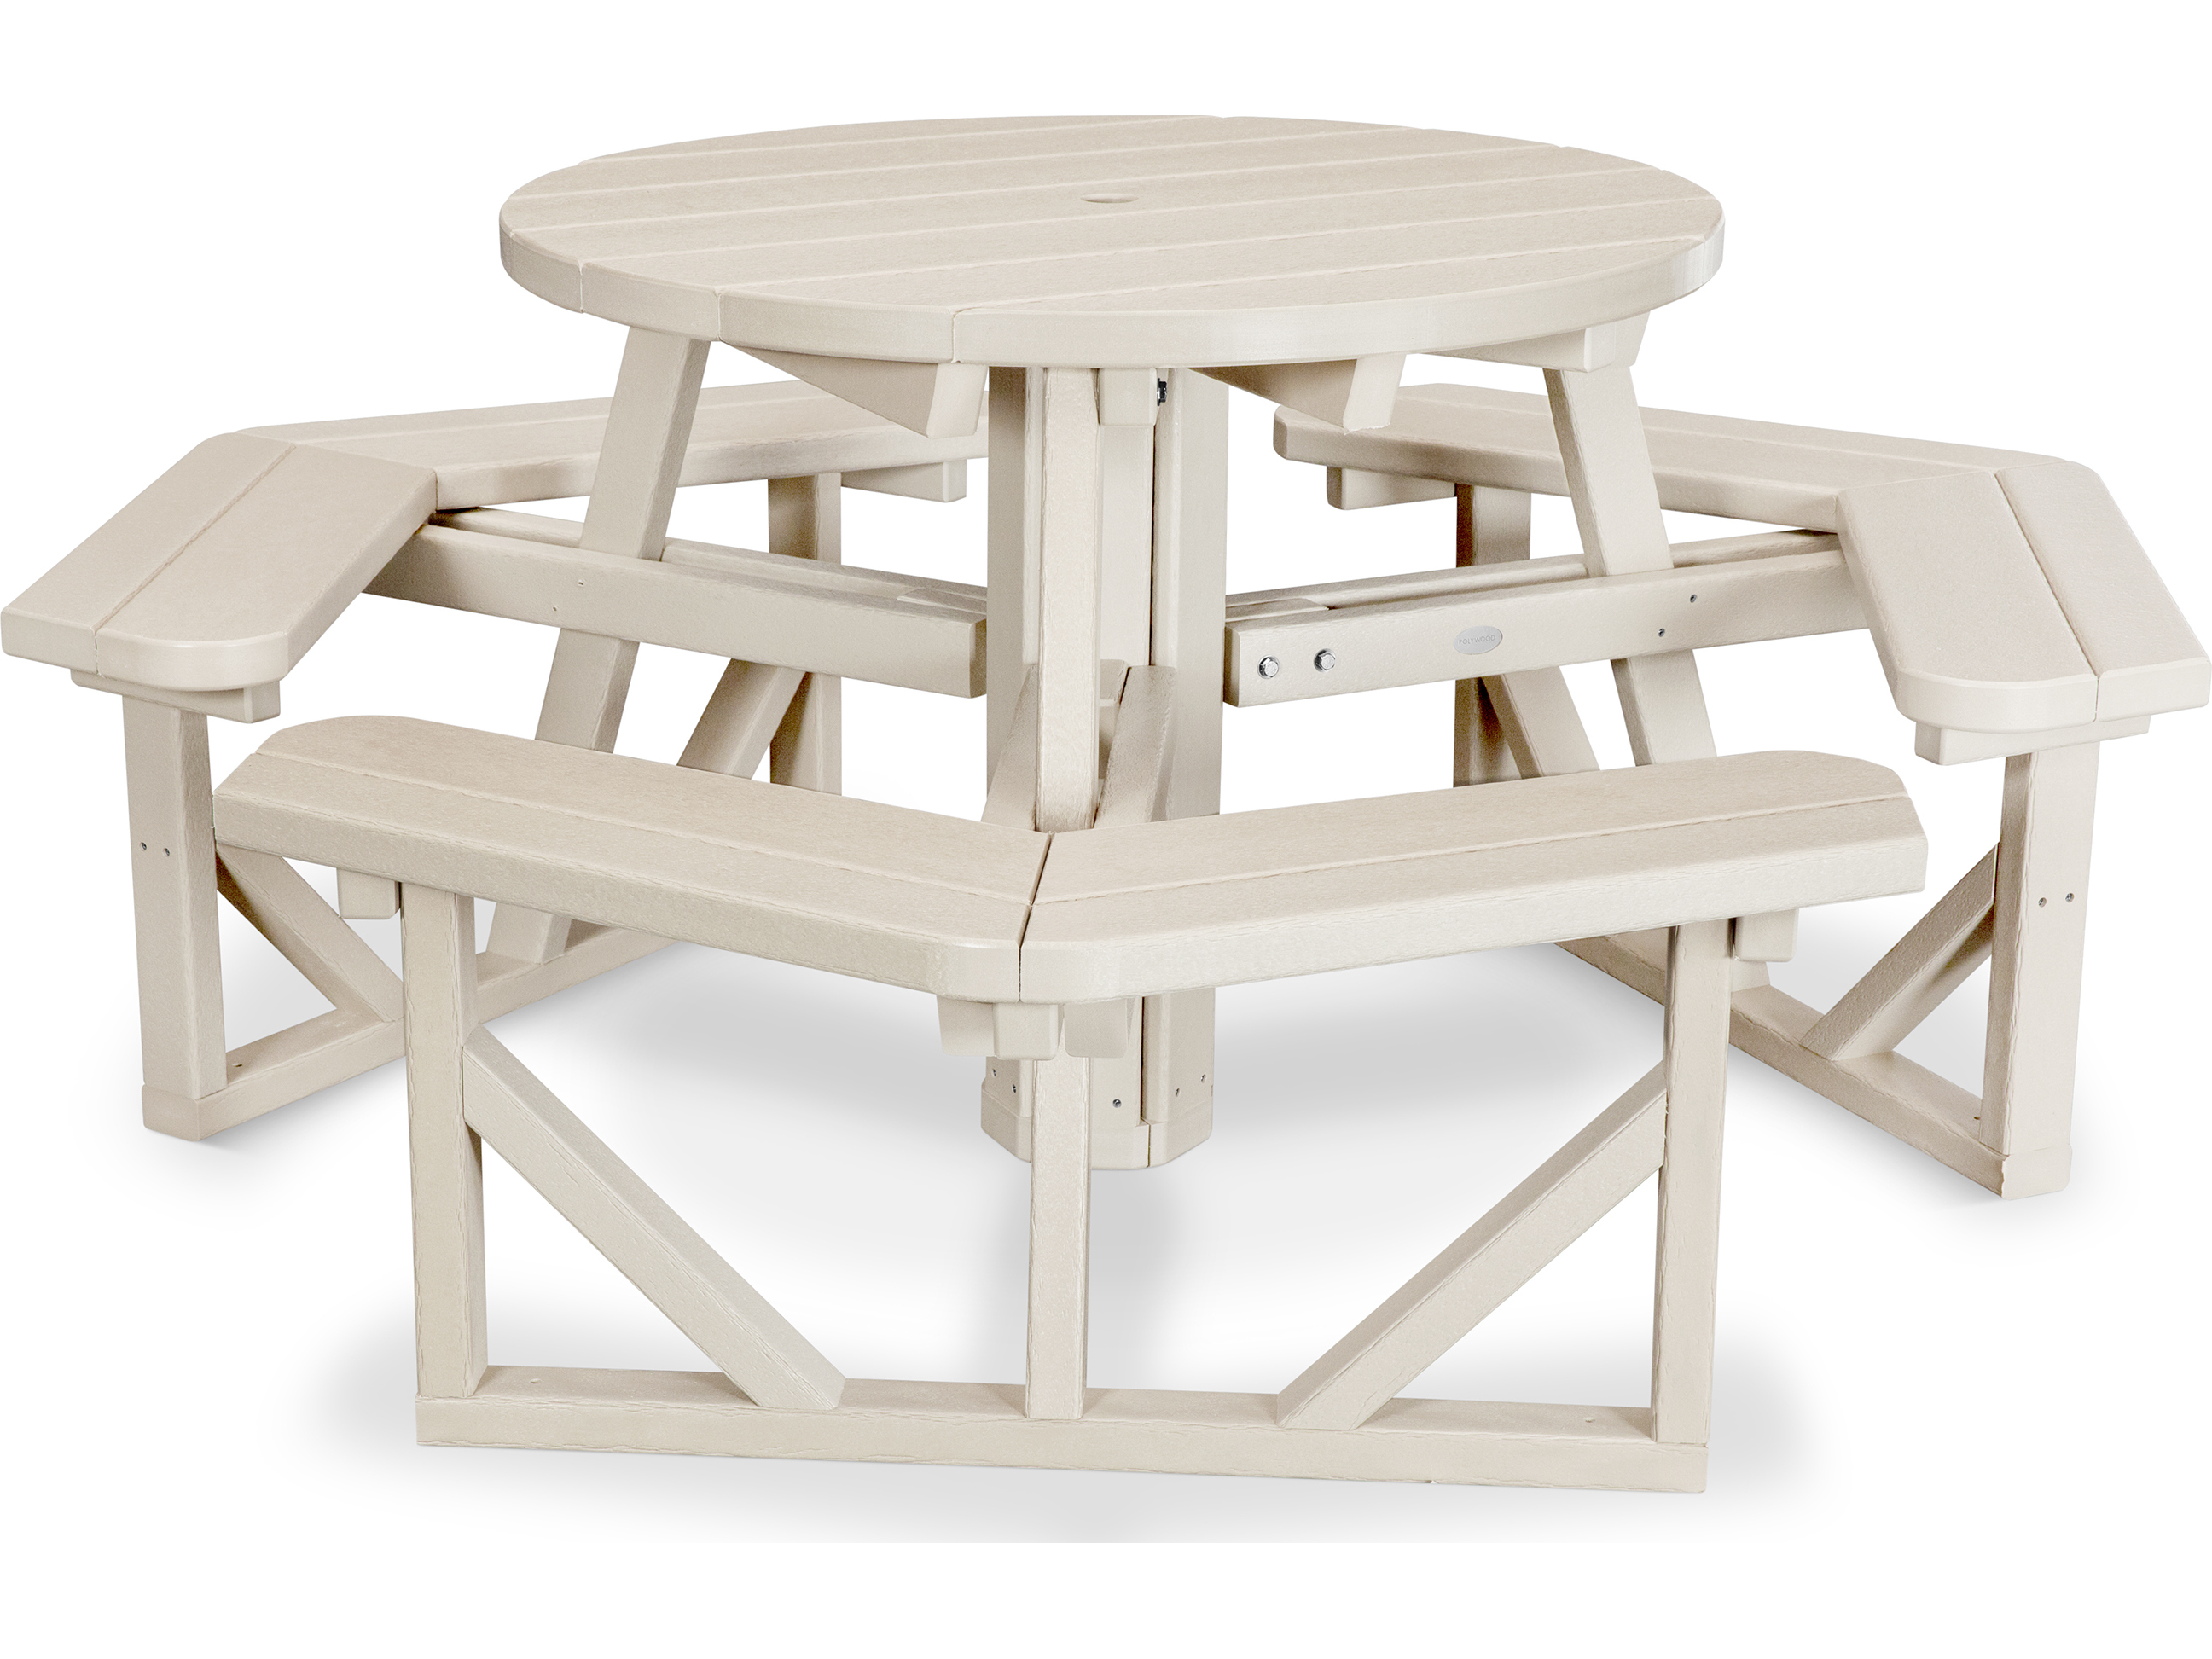 Plastic Picnic Table : POLYWOOD® Park Recycled Plastic 36 Round Picnic Table  PH36